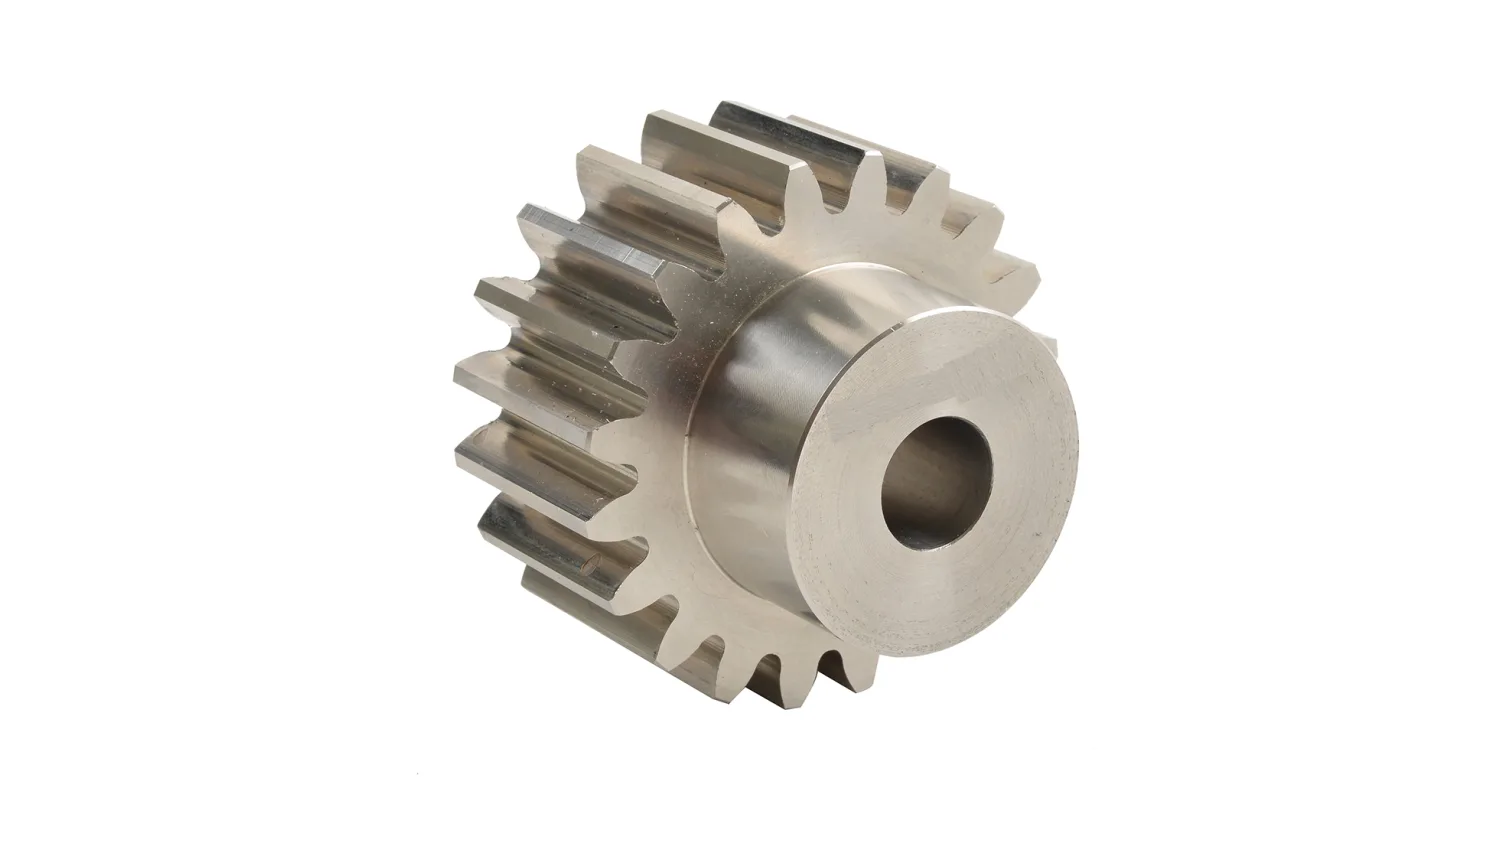 3-Mod-x-29-Tooth-Metric-Spur-Gear-in-Steel